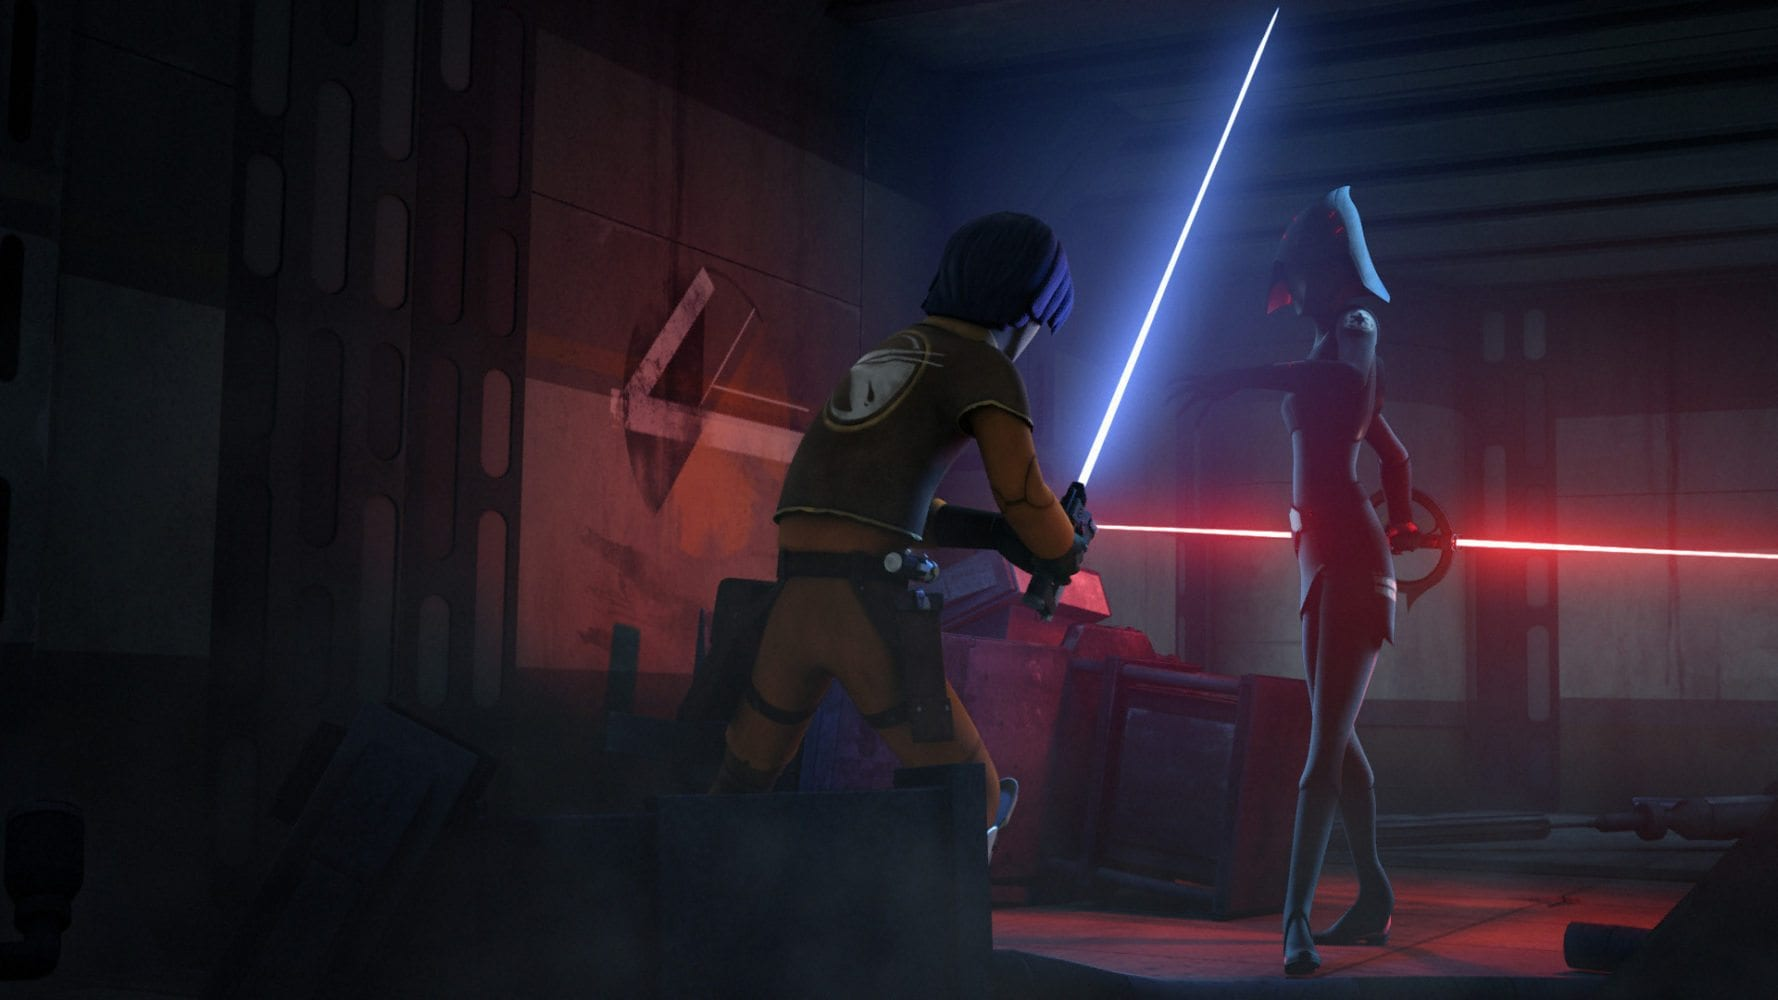 Ezra vs the seventh sister in Star Wars Rebels